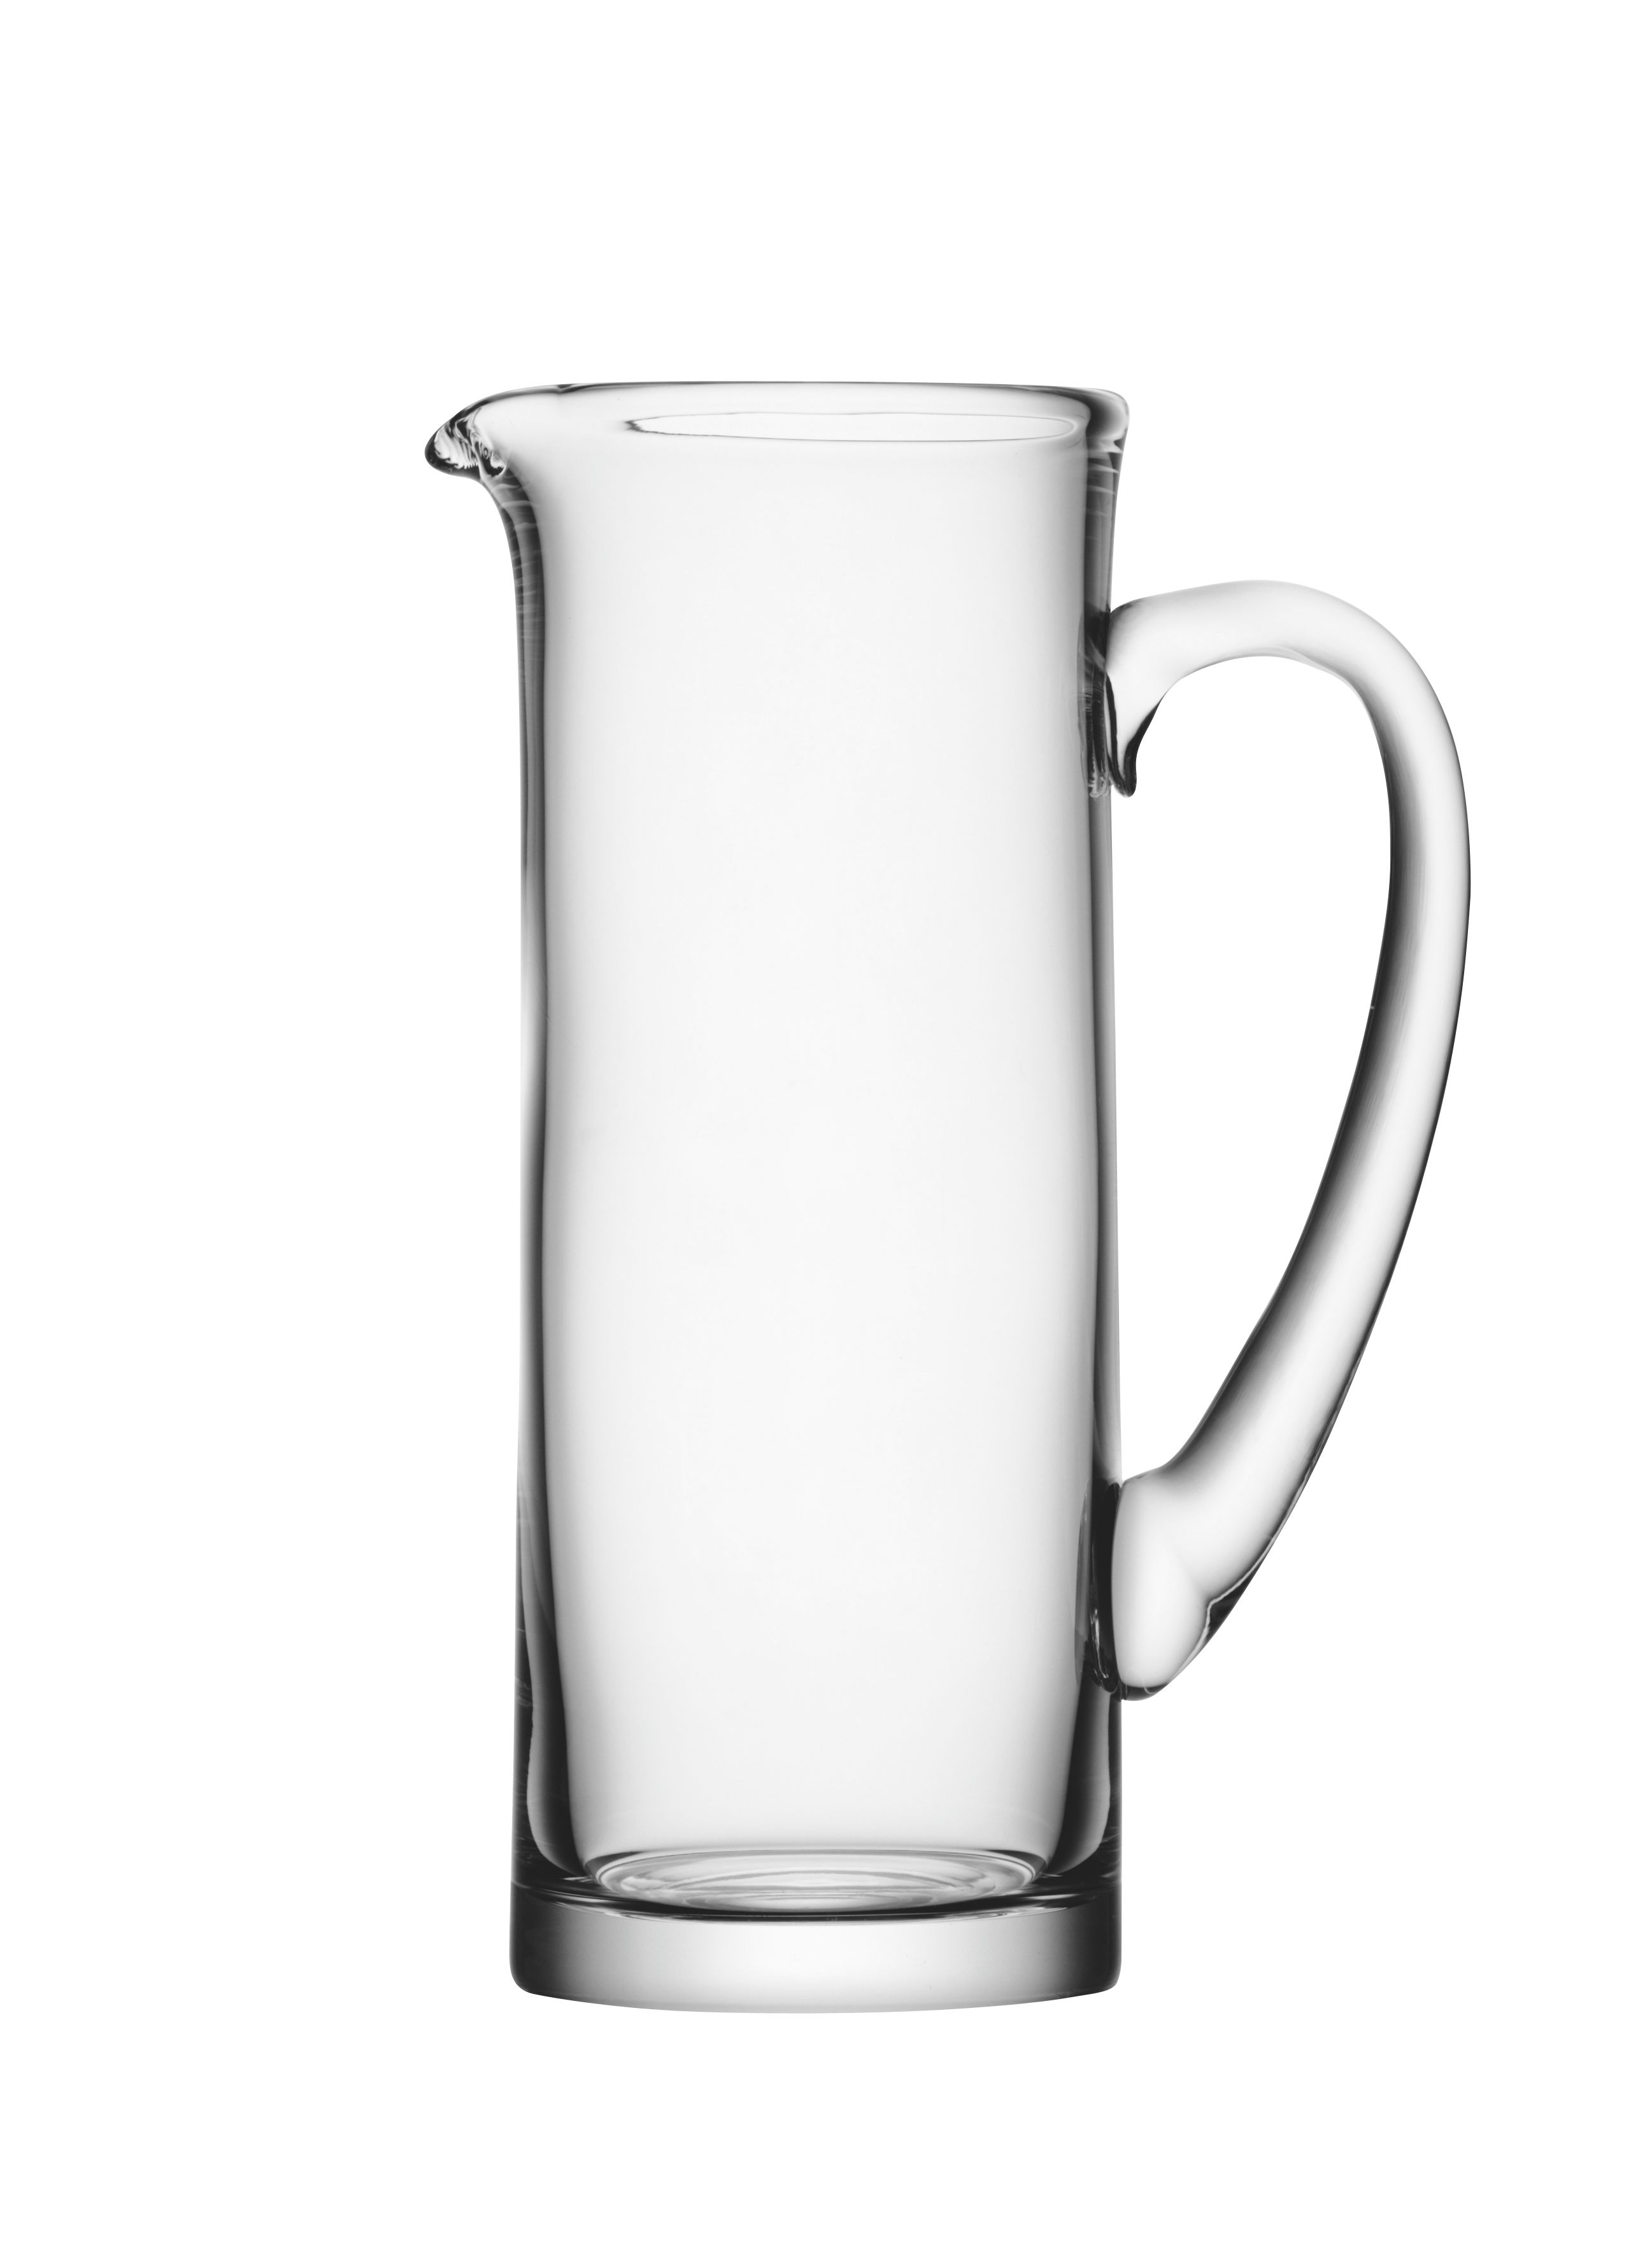 LSA International basis jug 1.5L clear